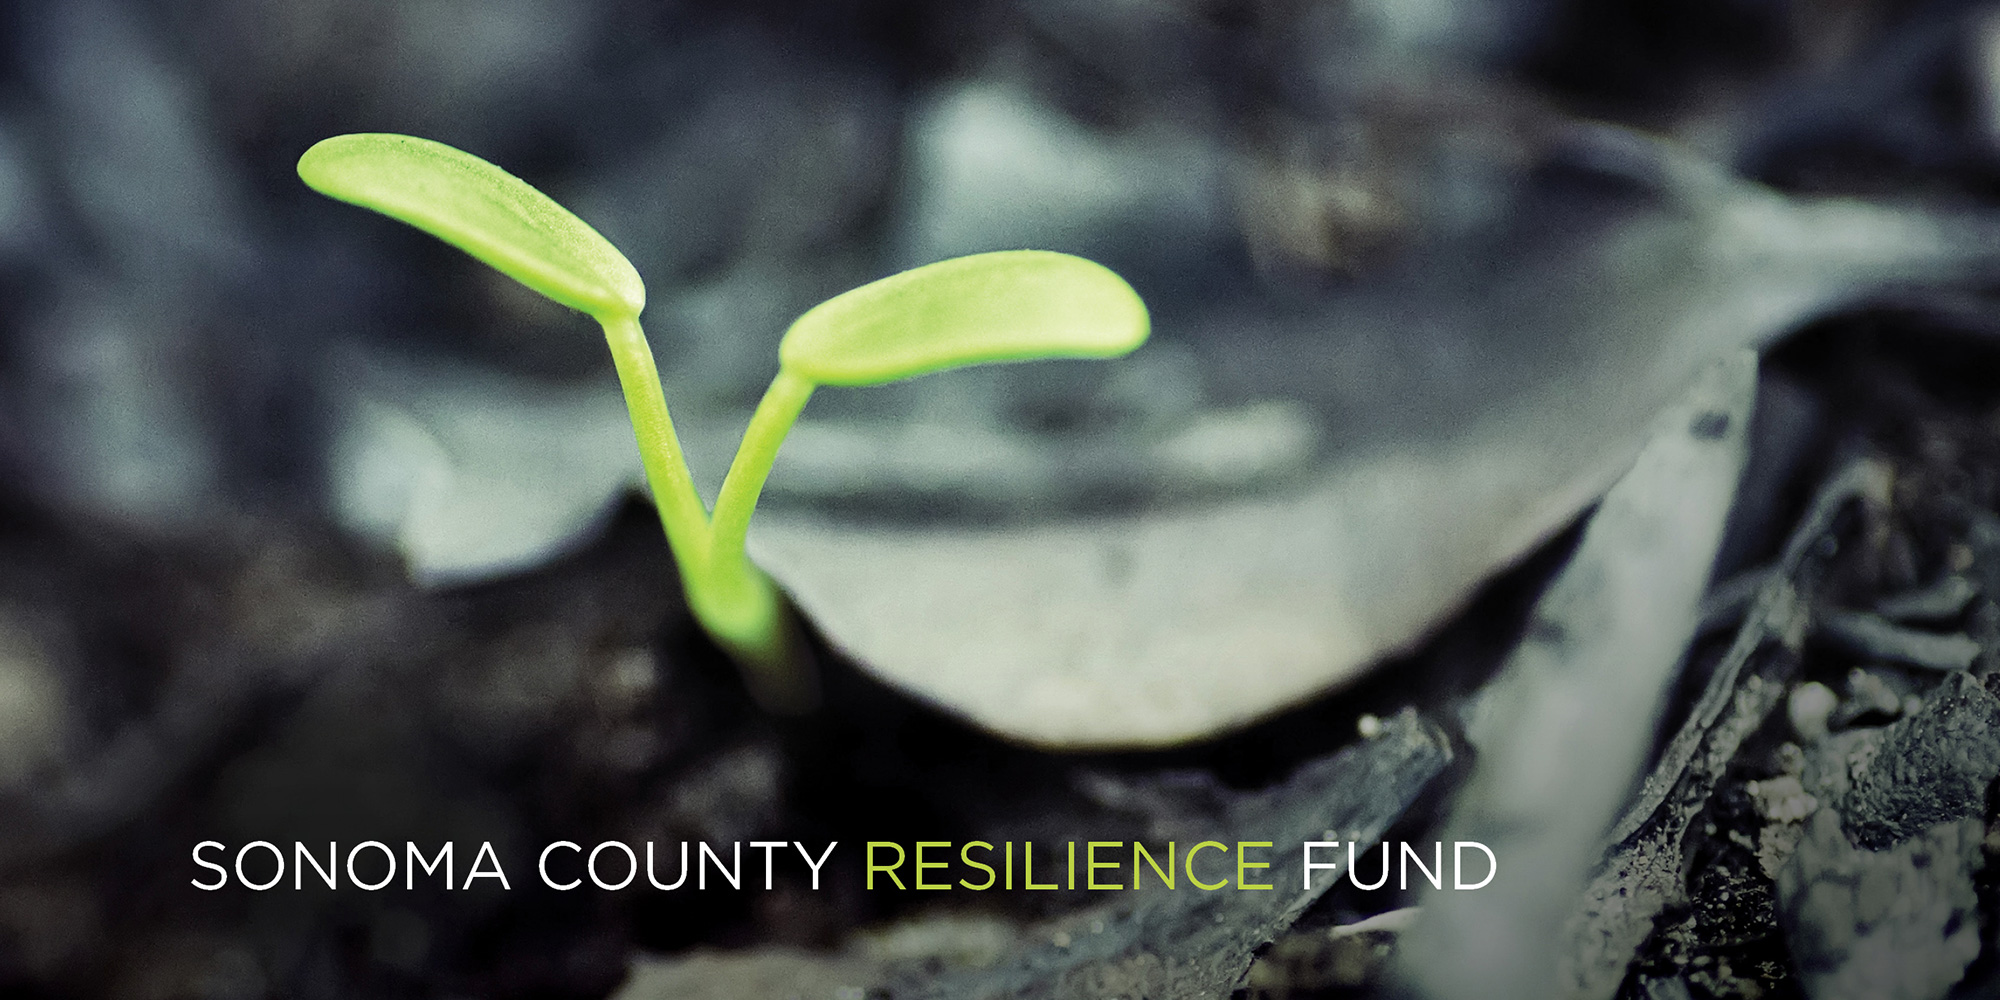 Sonoma County Resilience Fund